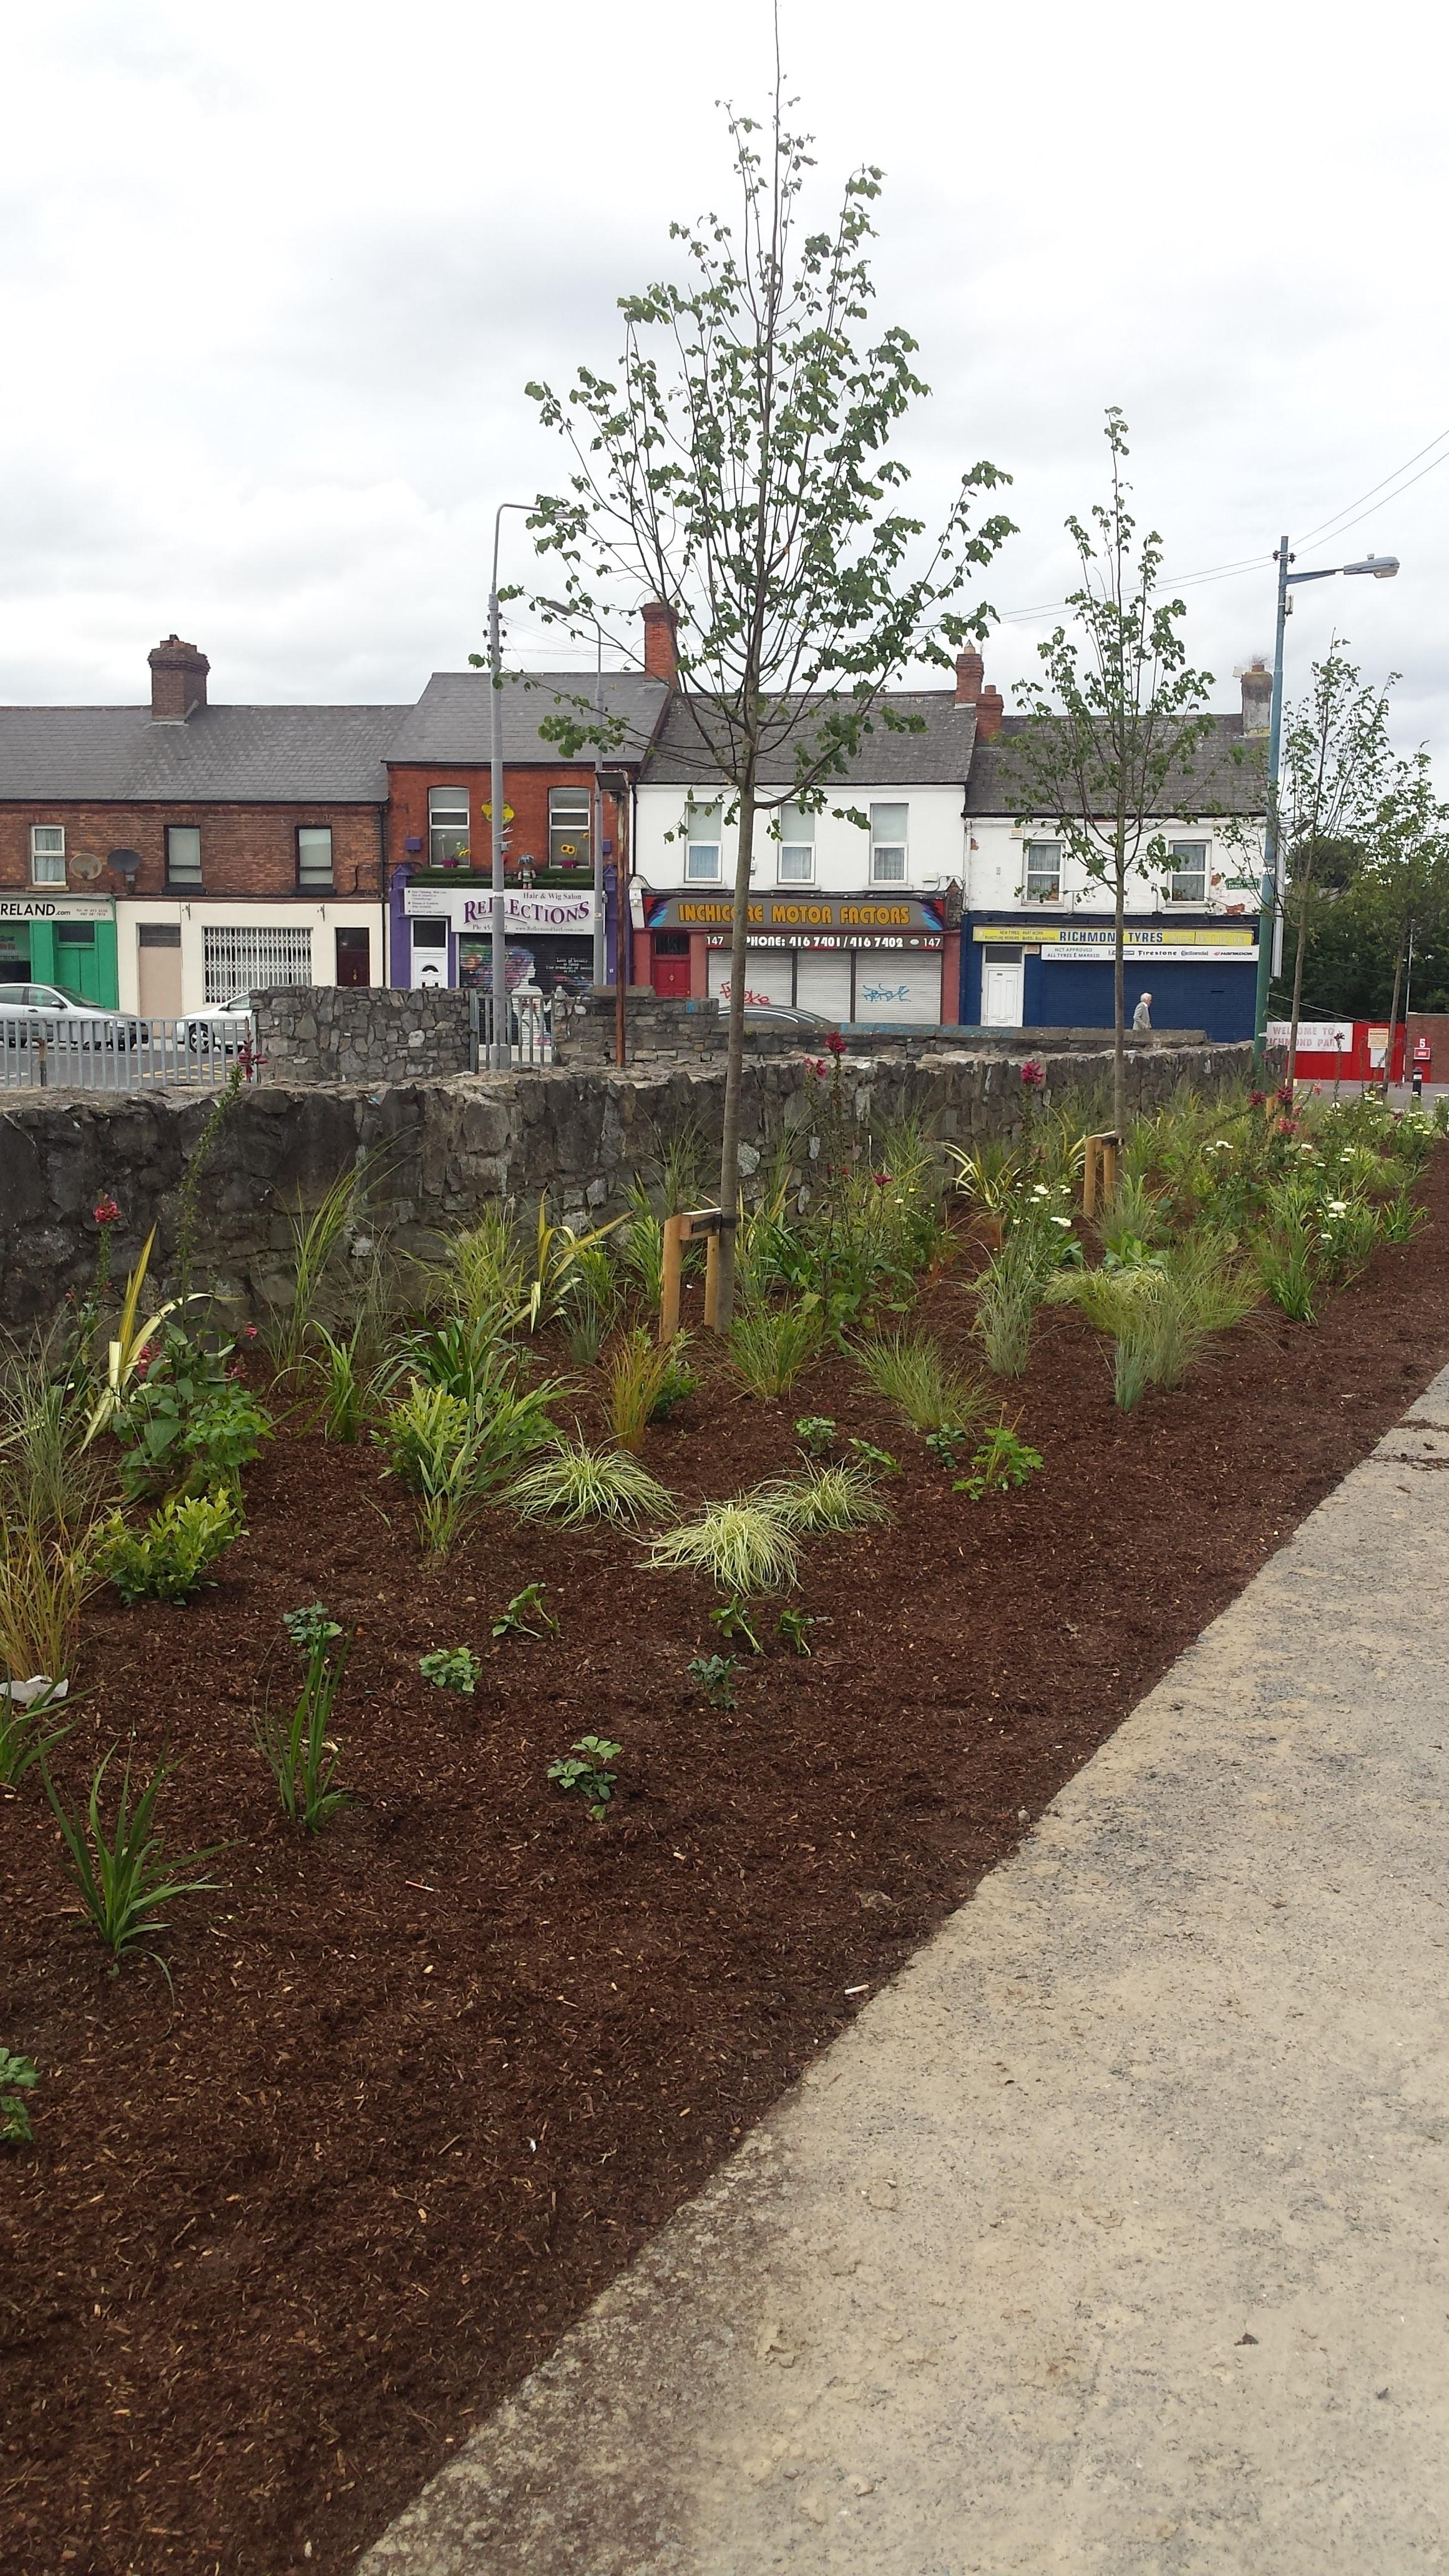 Well done! - Greening & Improvement of Patriot's Way